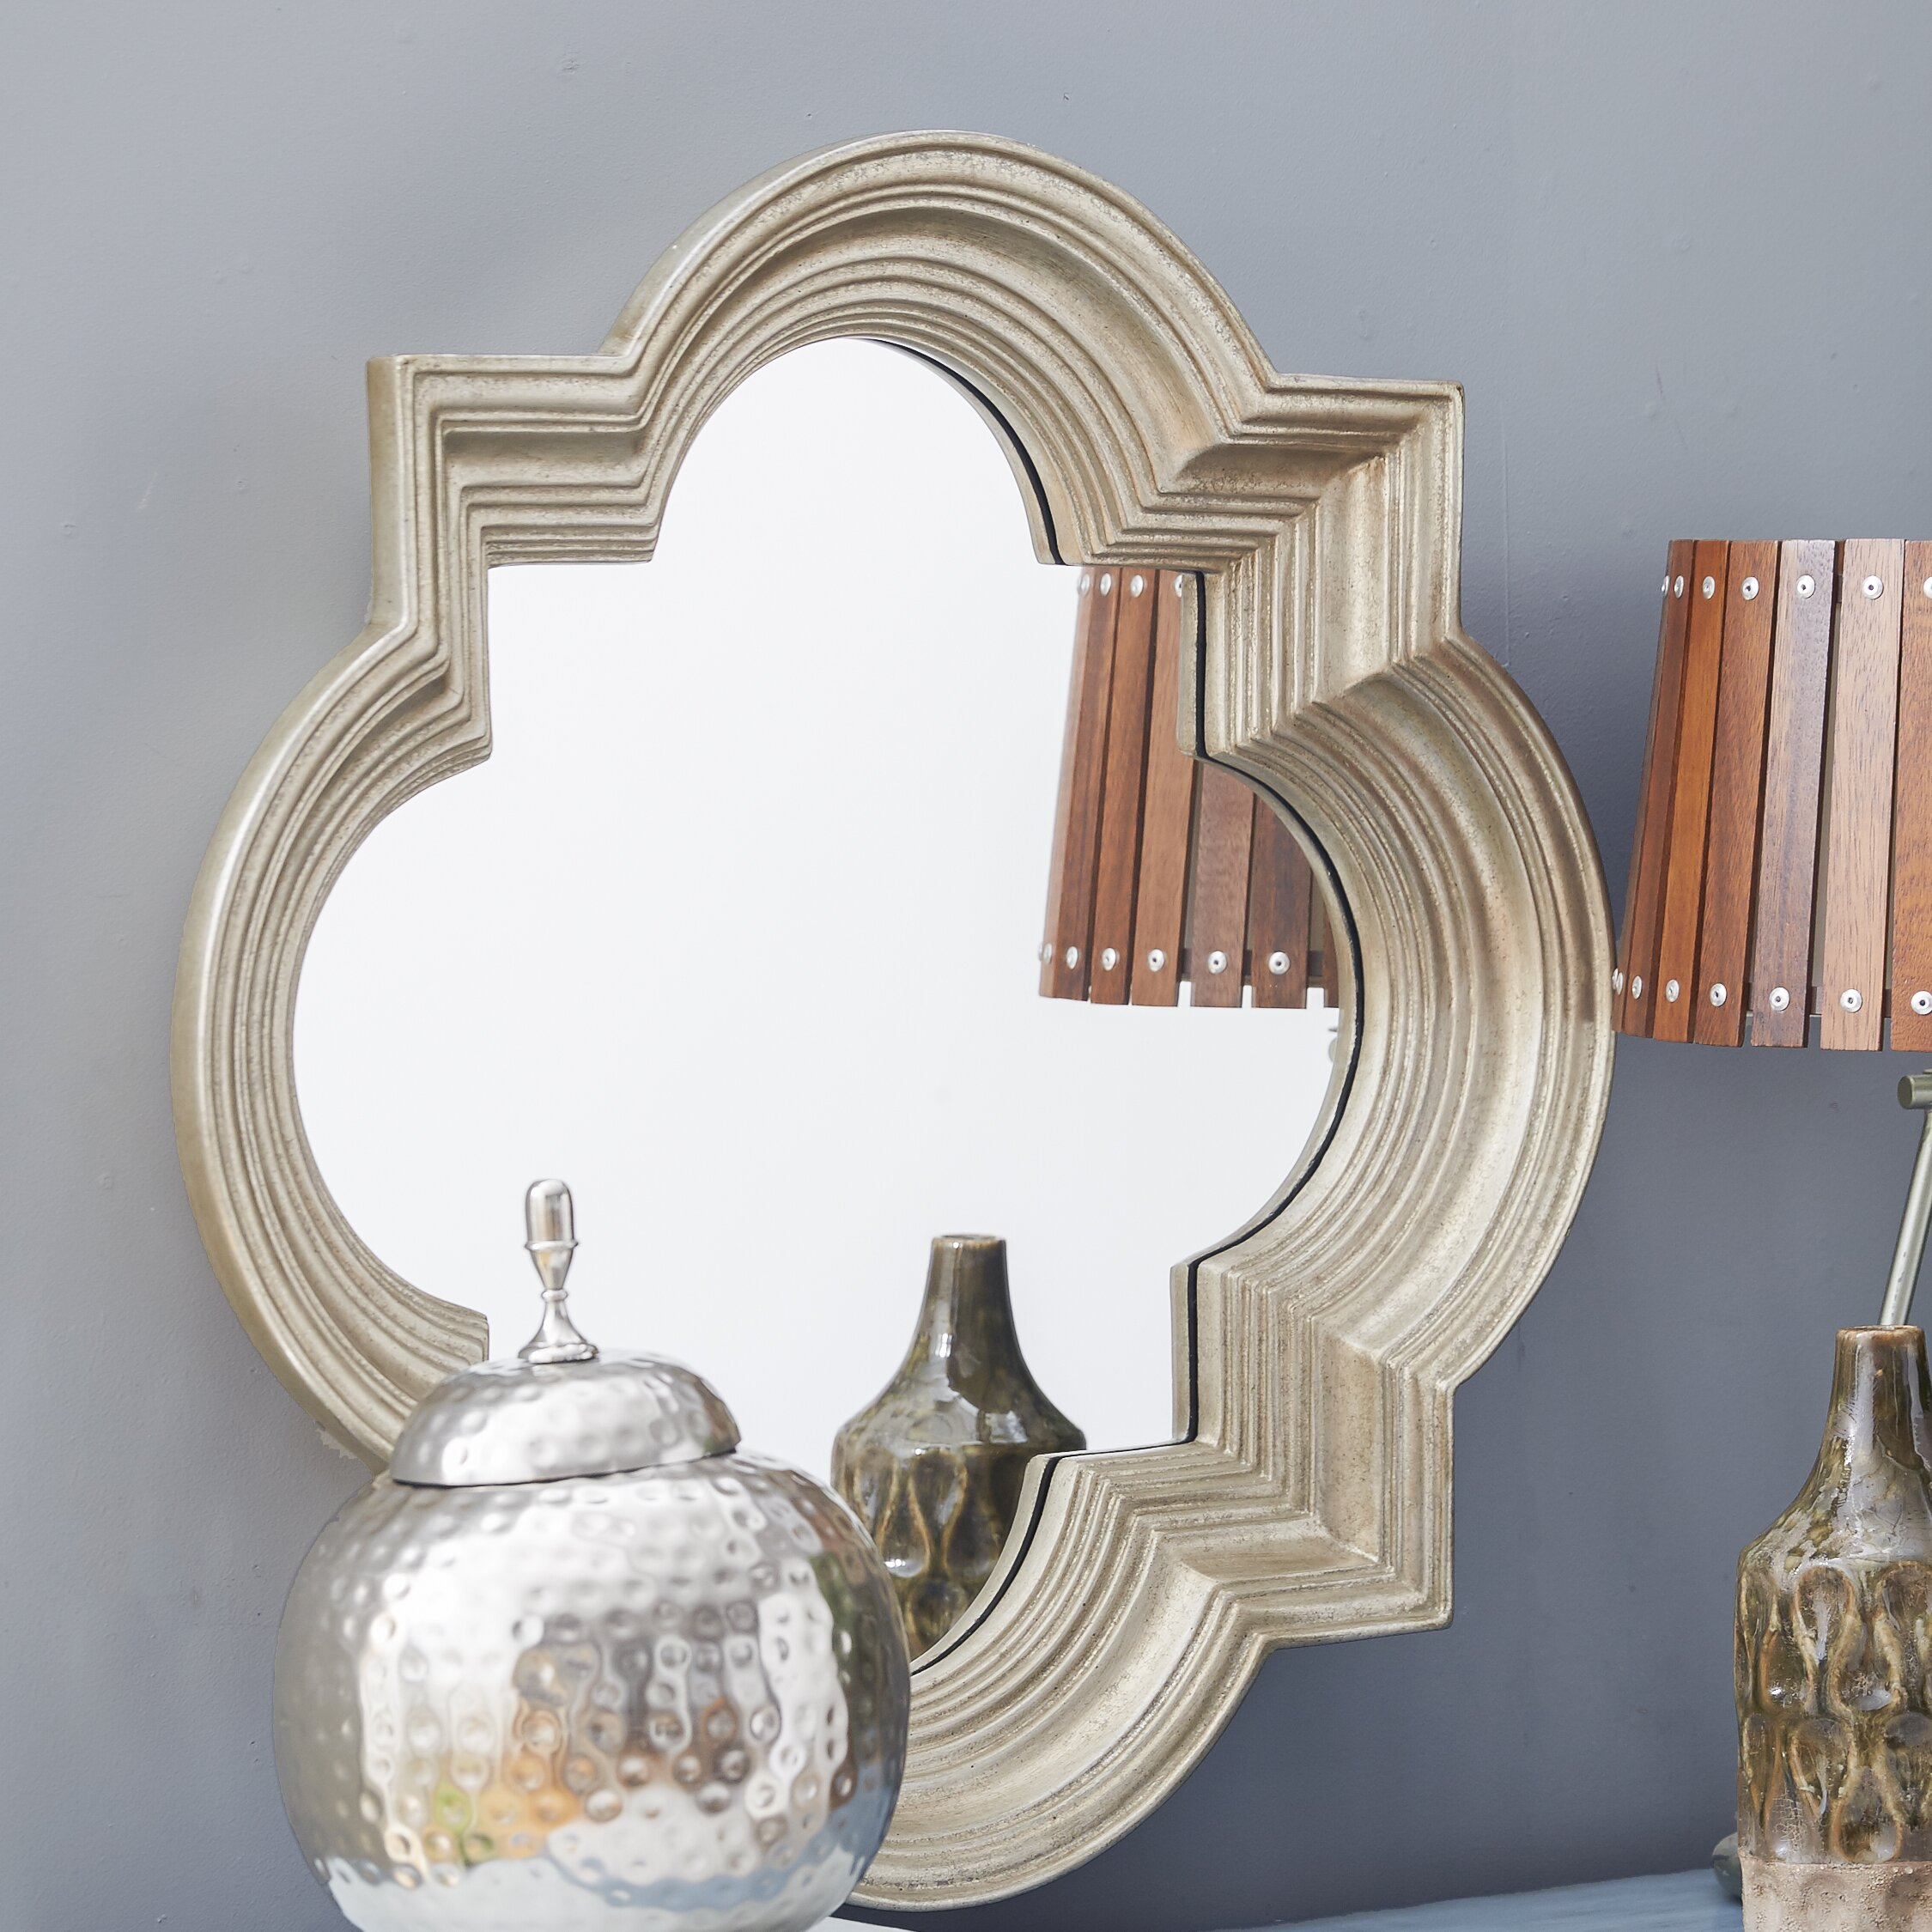 Osp designs gatsby decorative beveled wall mirror for Decorative mirrors